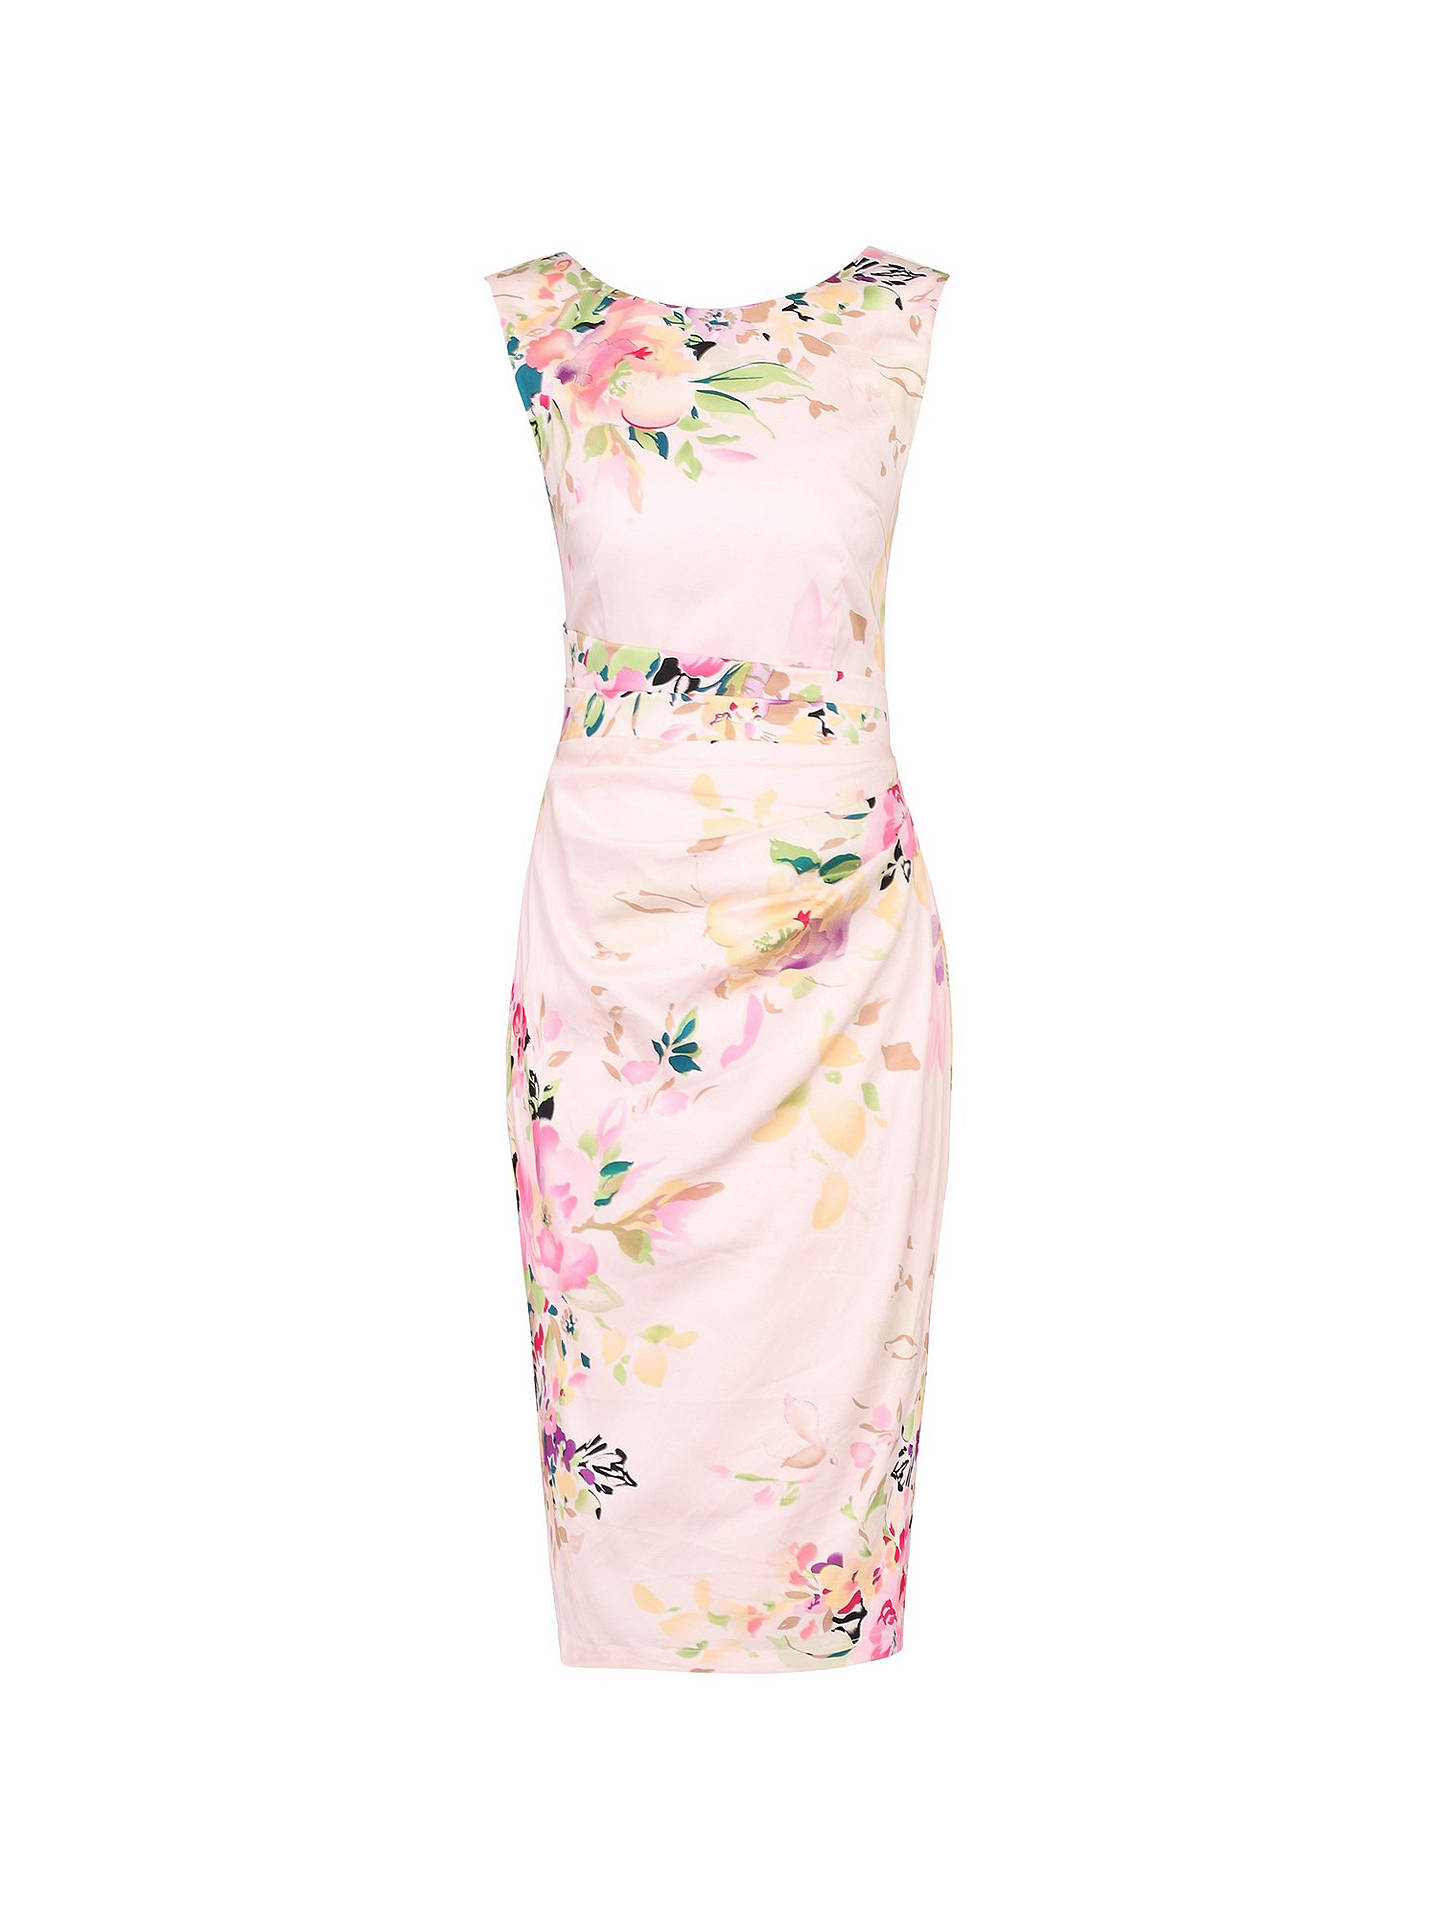 e283df80 ... Buy Jolie Moi Floral Sleeveless Ruched Dress, Light Pink/Multi, 6  Online at ...